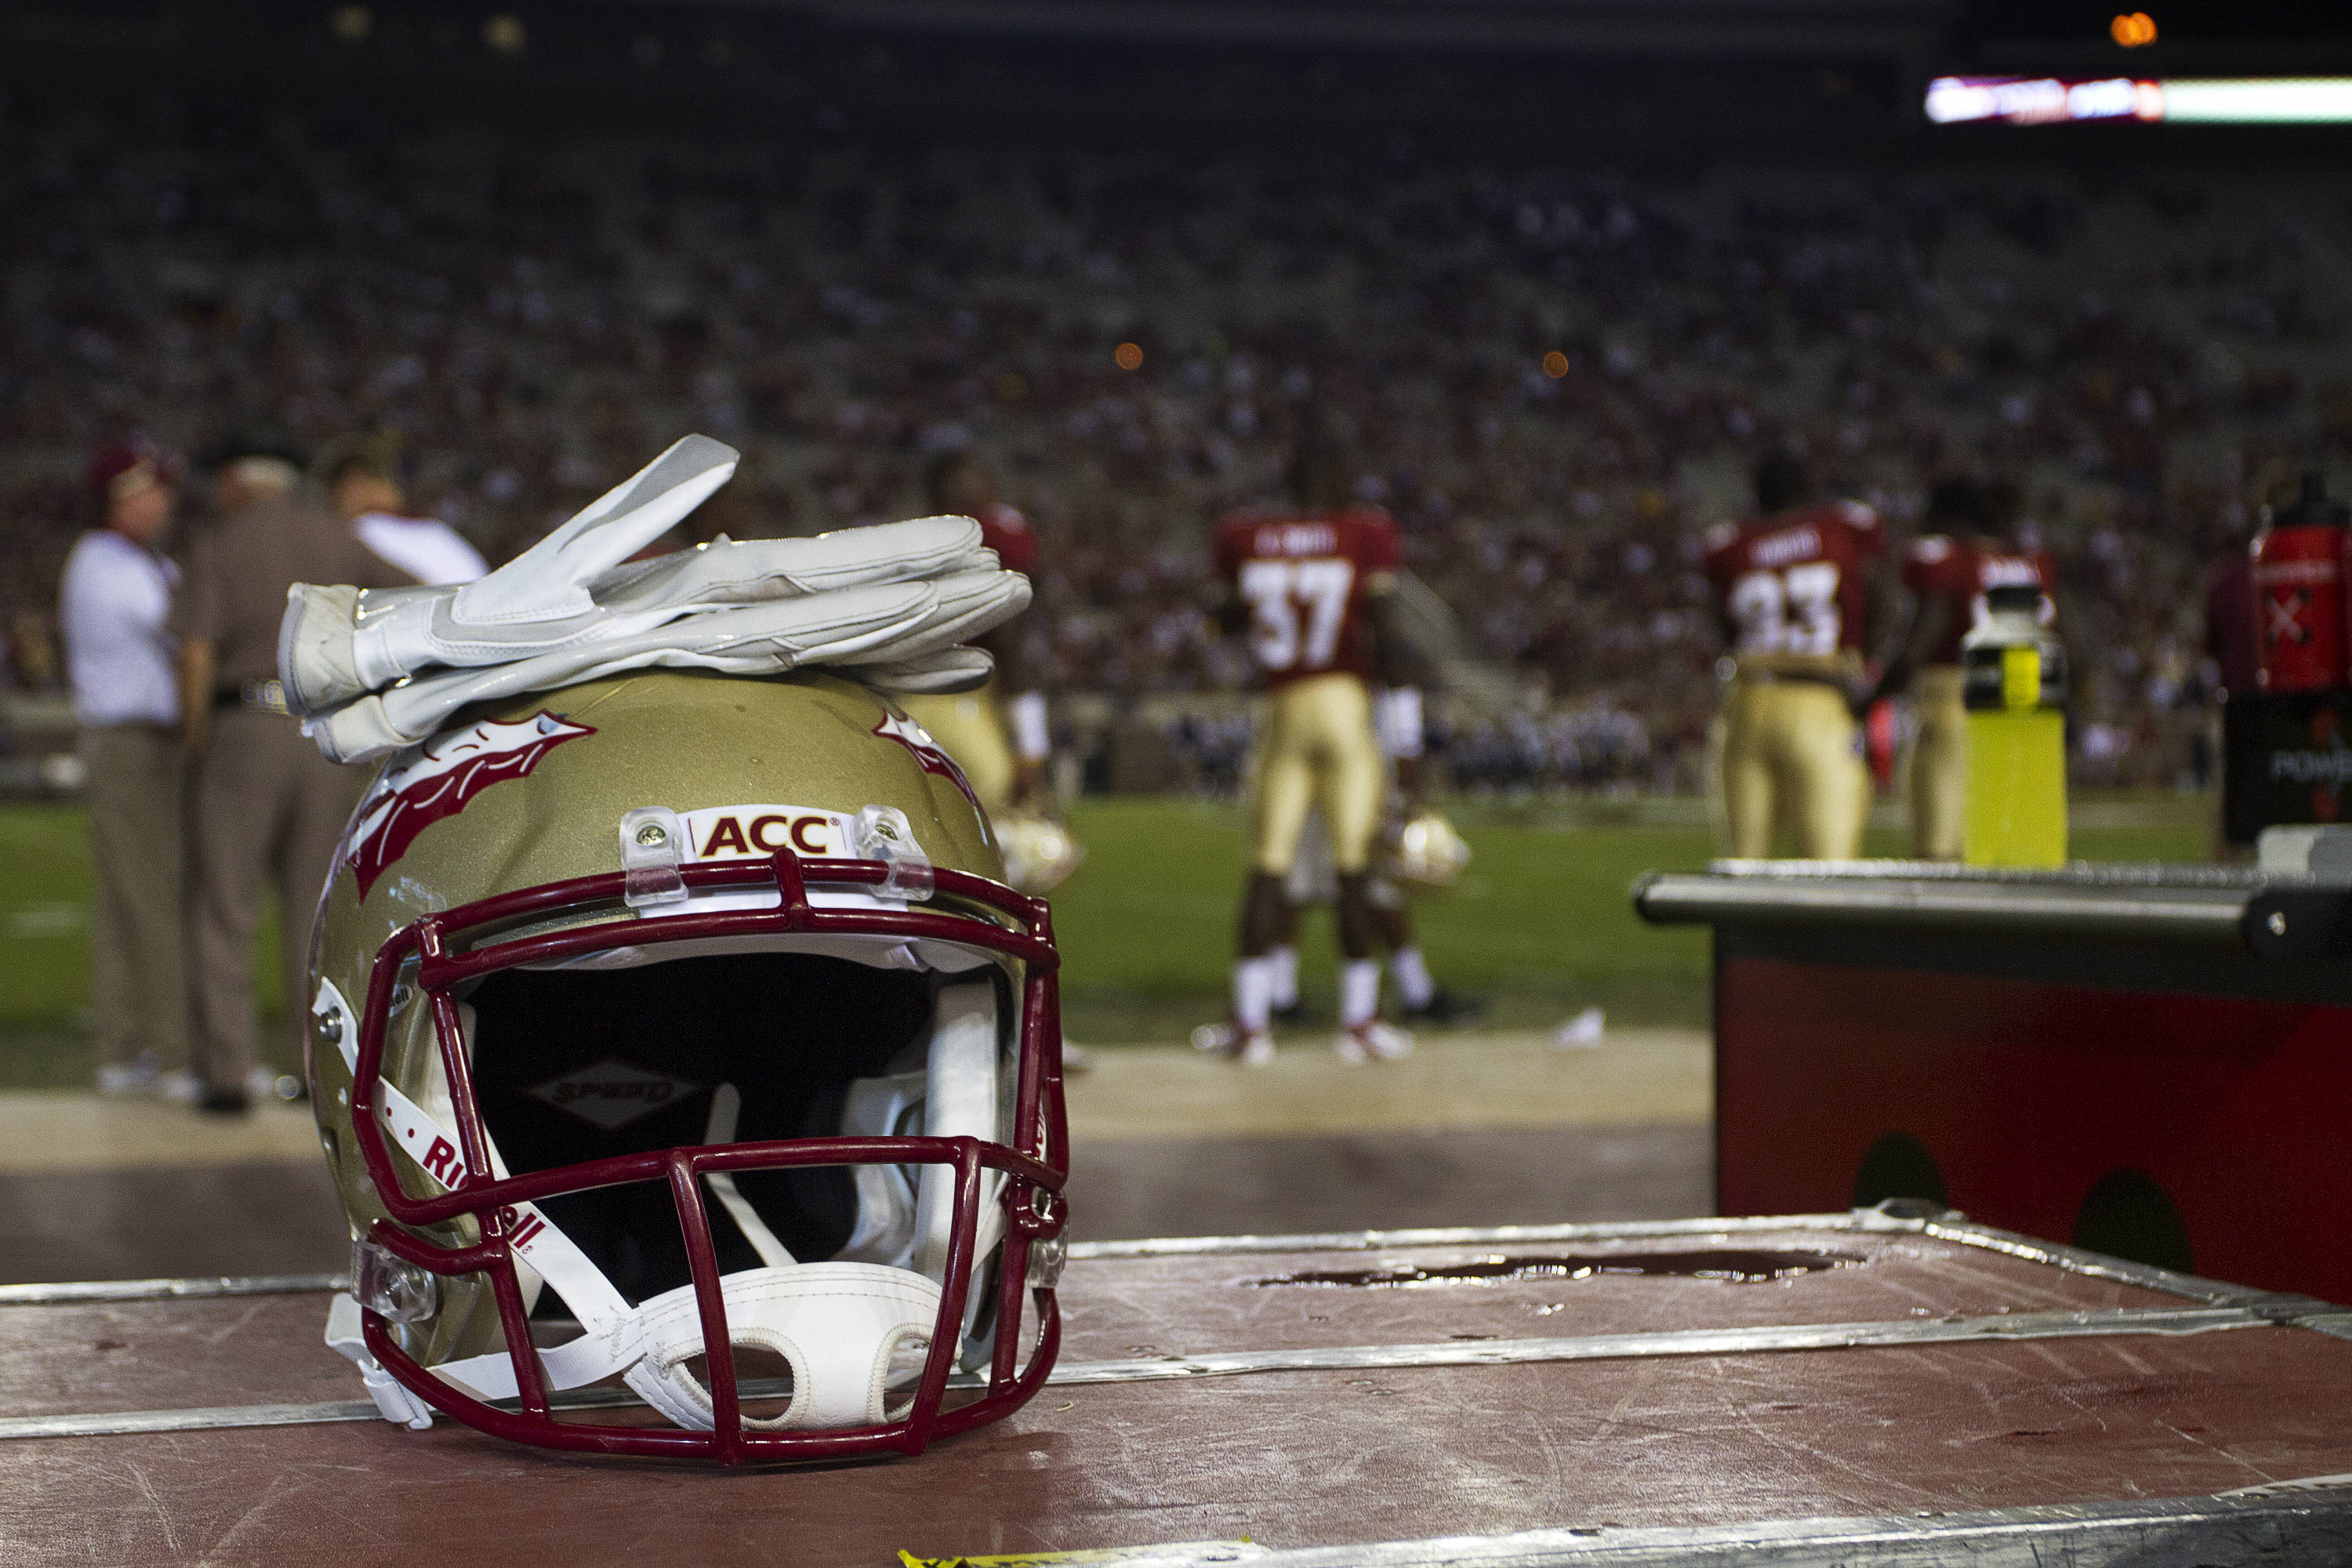 A helmet and gloves sit on the Seminole sideline.